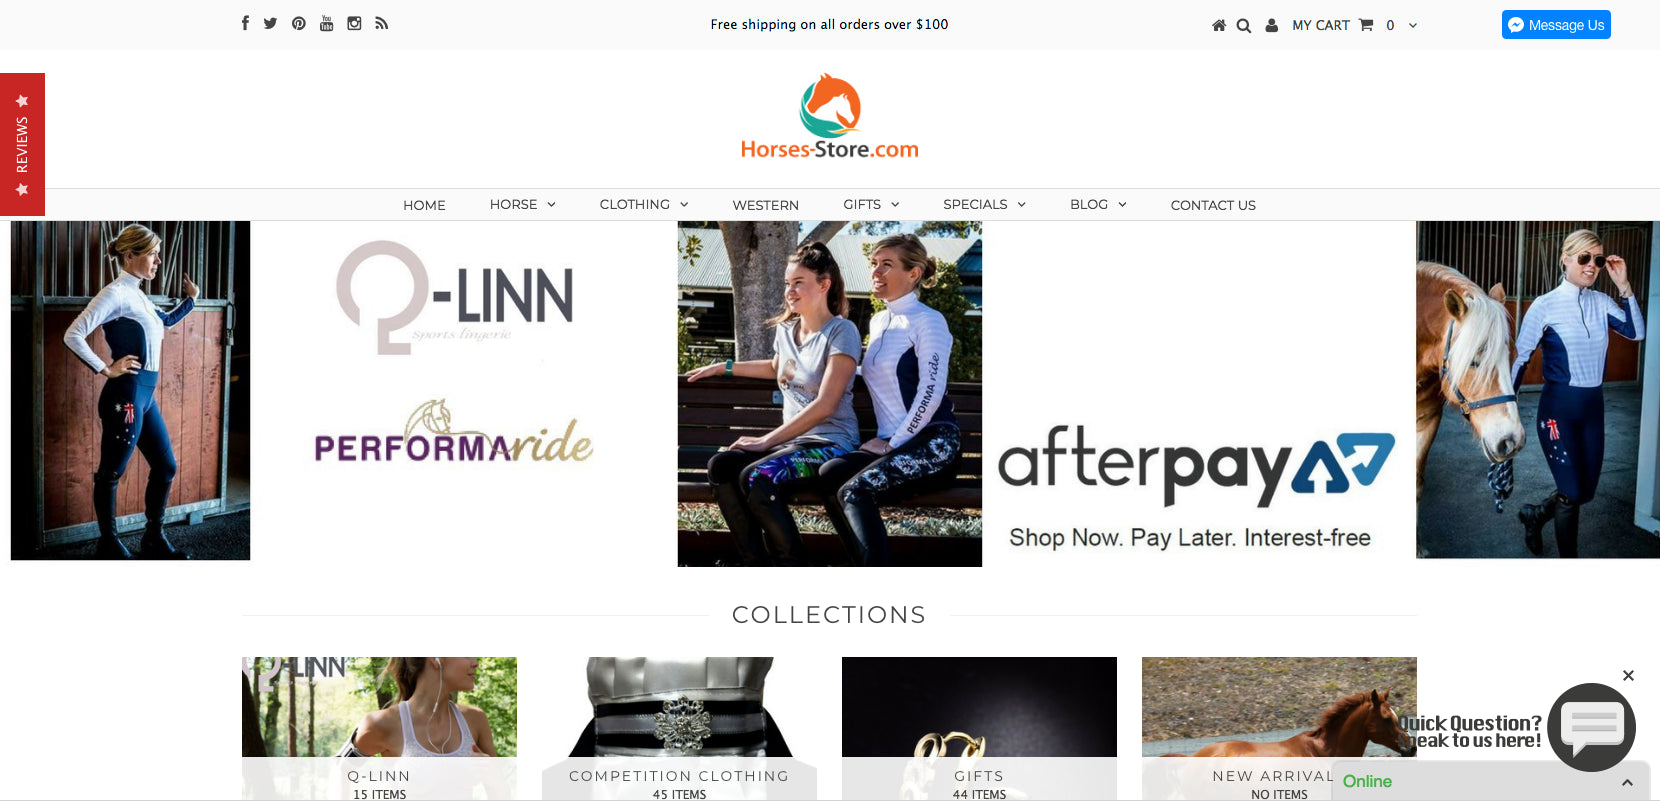 Horses-Store.com Screenshot - 2